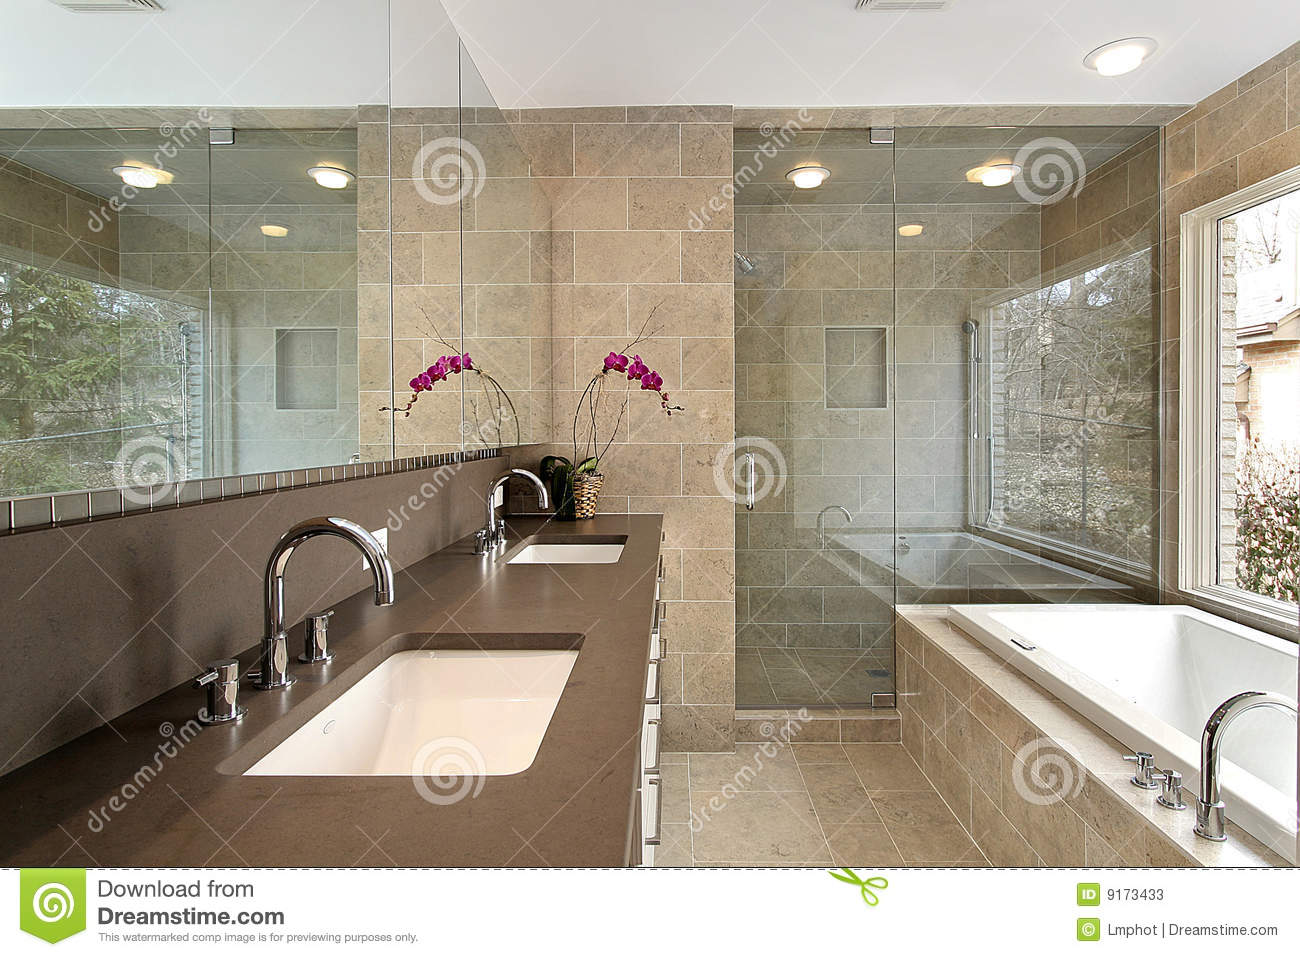 1 003 Master Bath Luxury Home Photos Free Royalty Free Stock Photos From Dreamstime